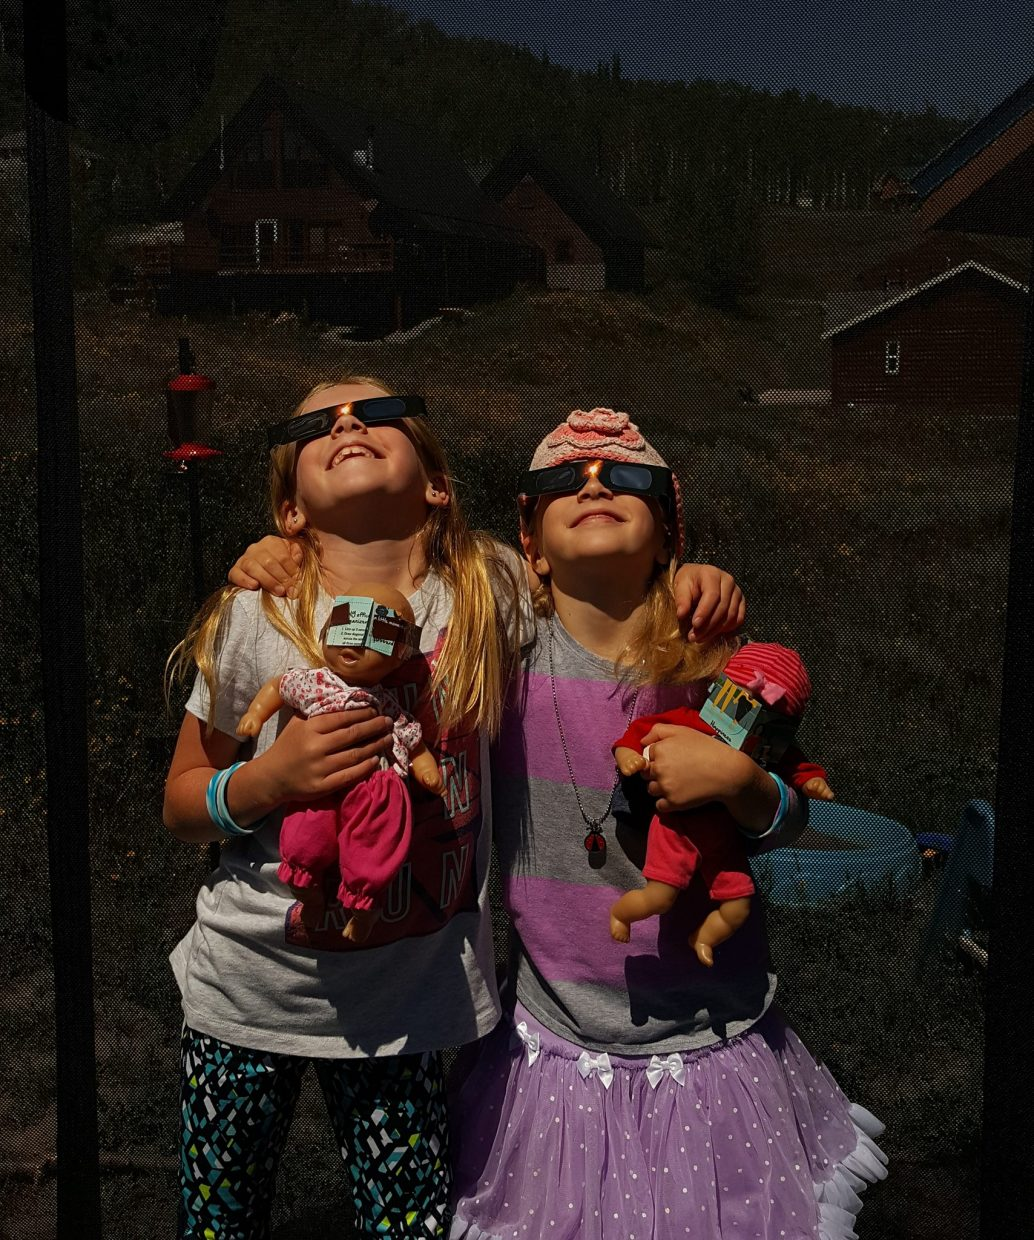 Kids waiting and watching the eclipse.